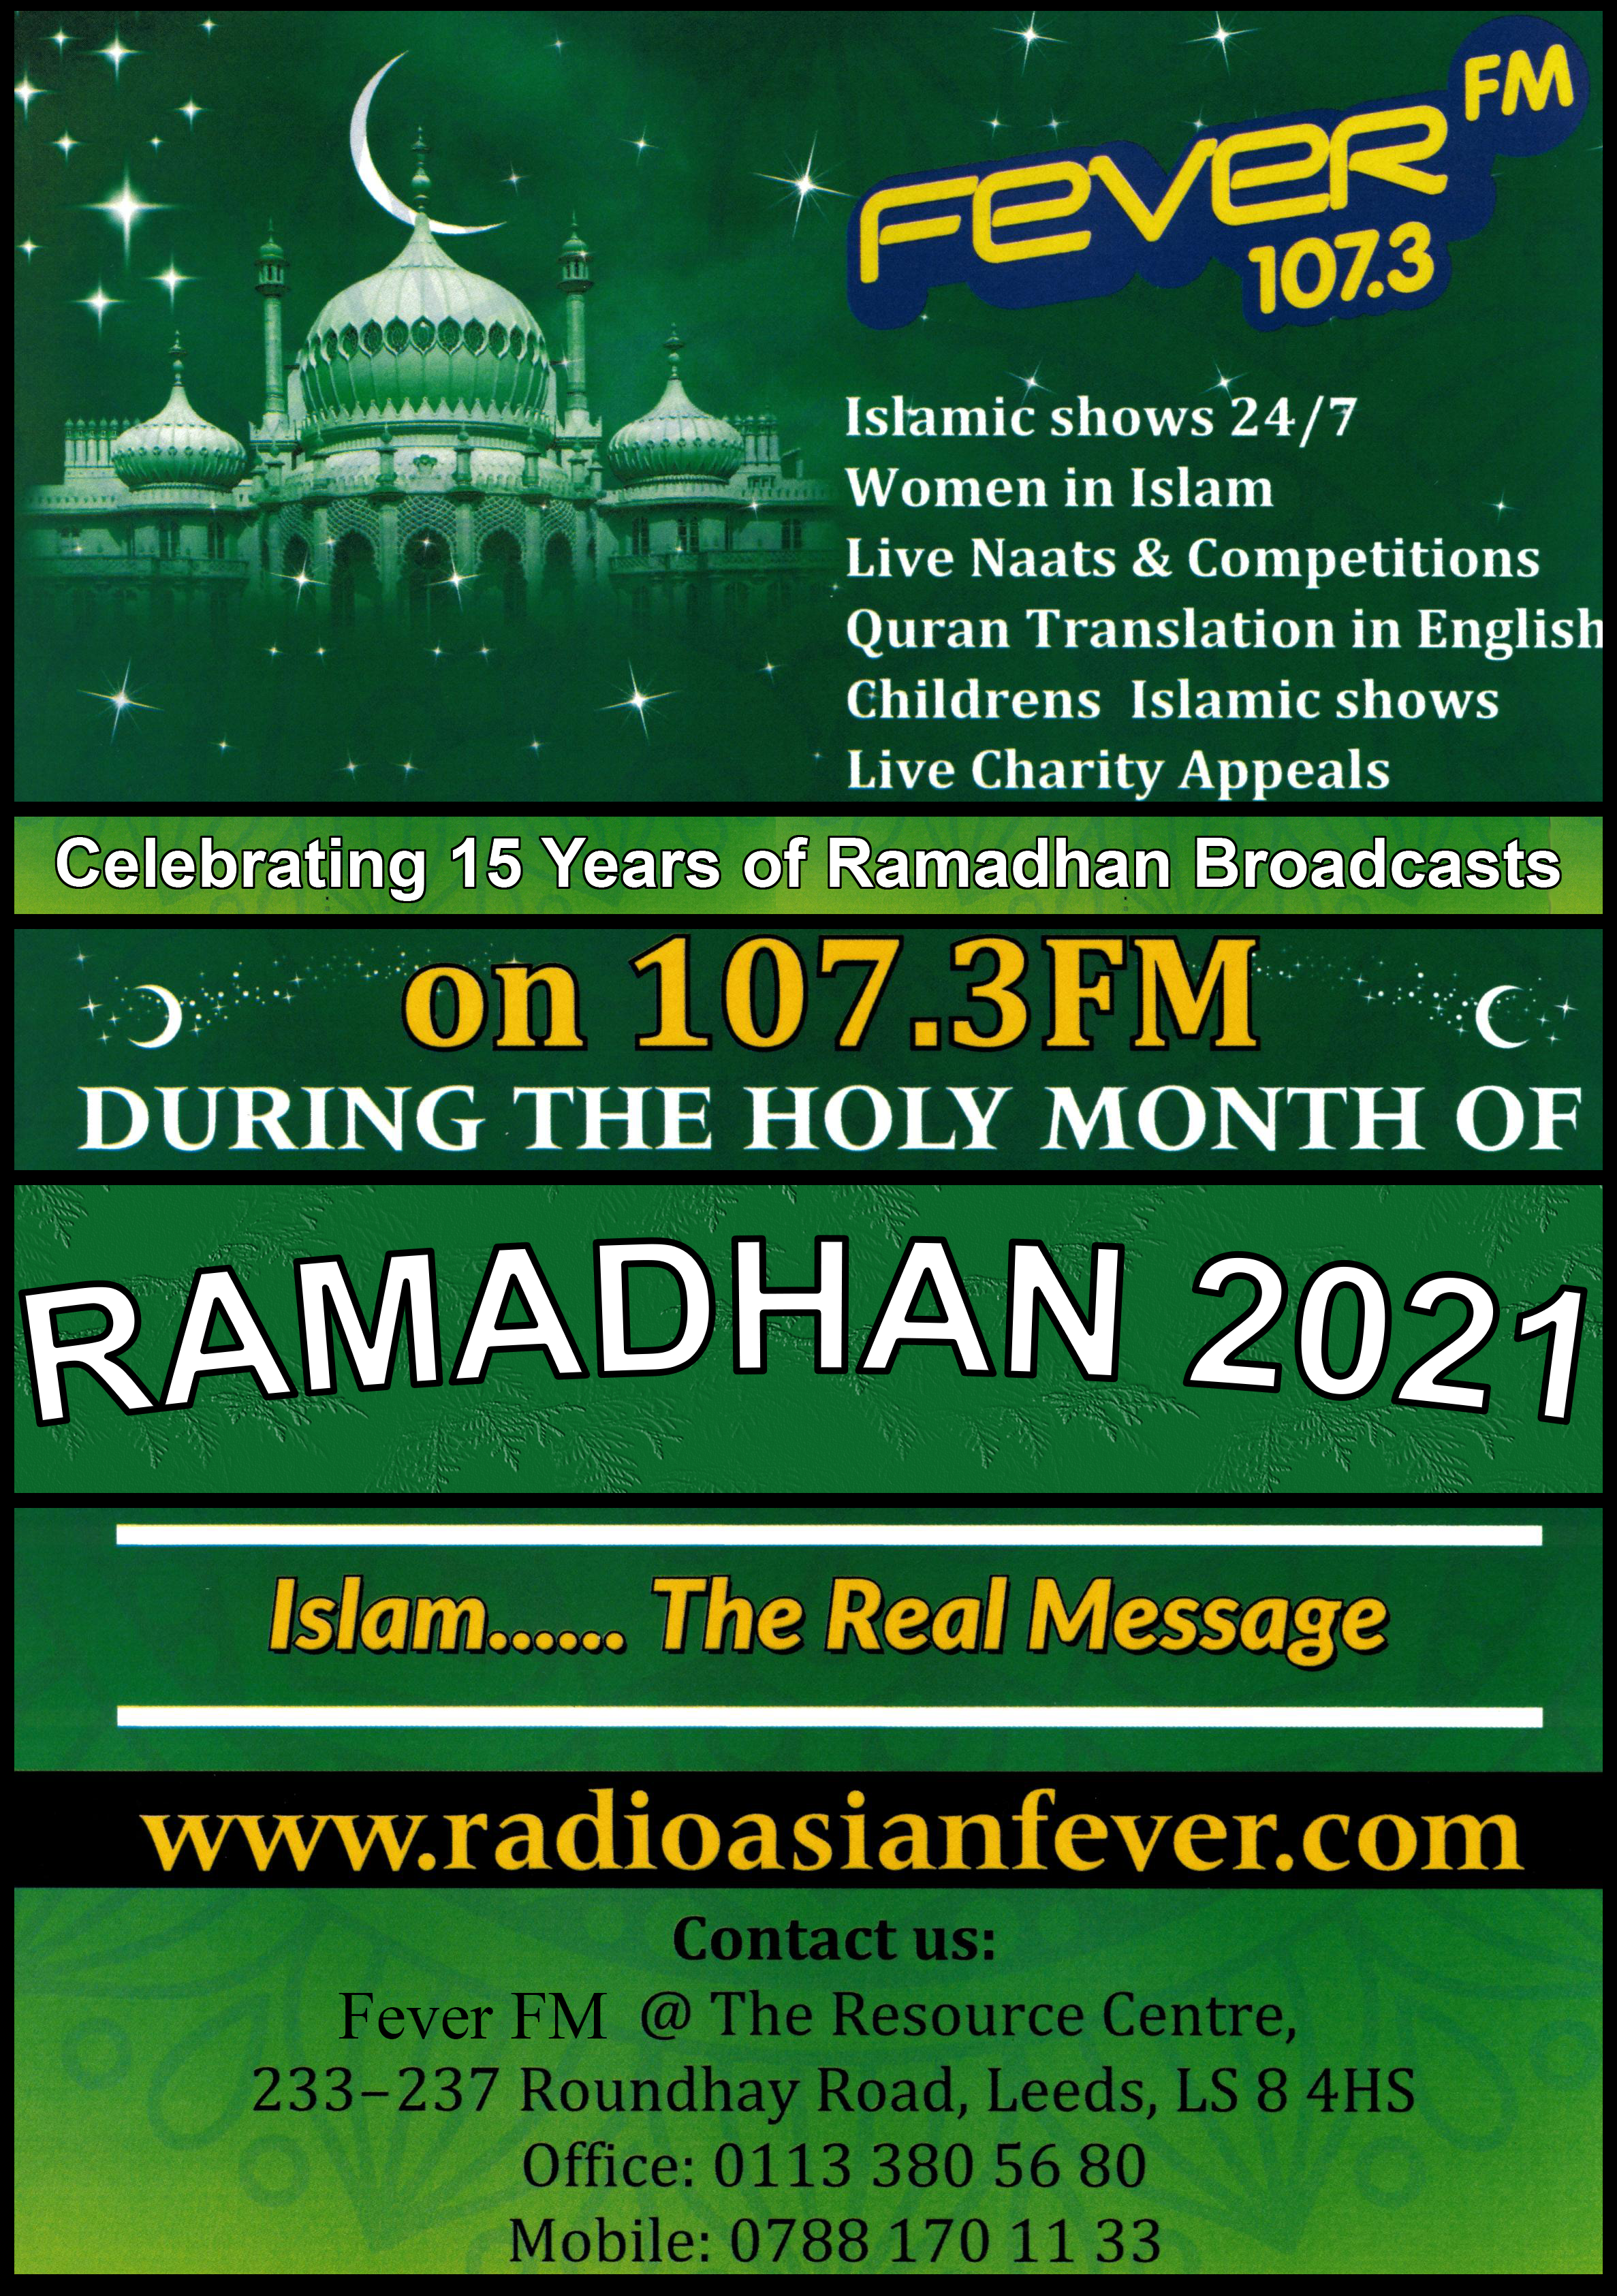 Join Fever FM for the Holy Month of Ramadhan